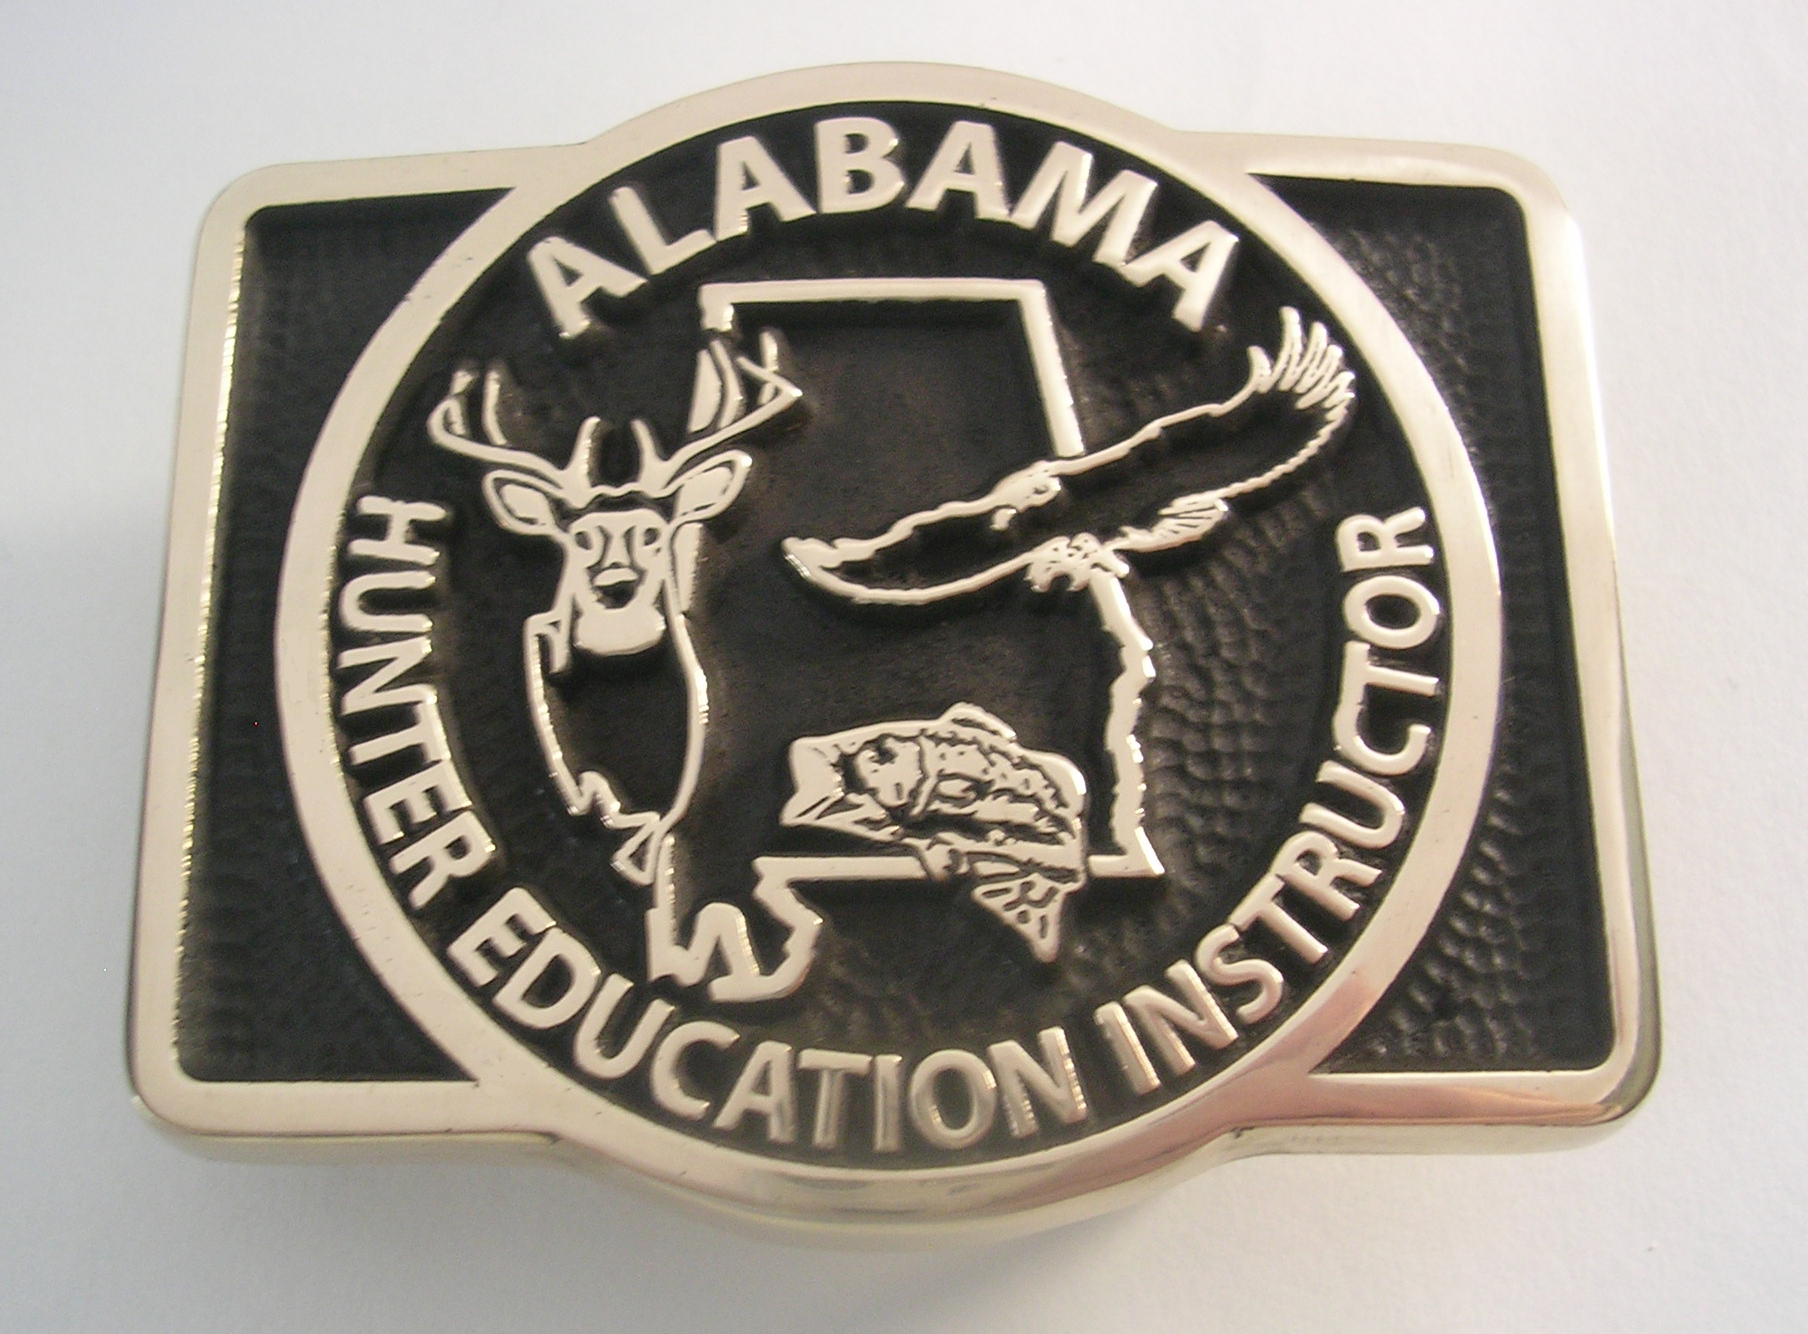 Alabama Hunter Education Instructor Belt Buckle